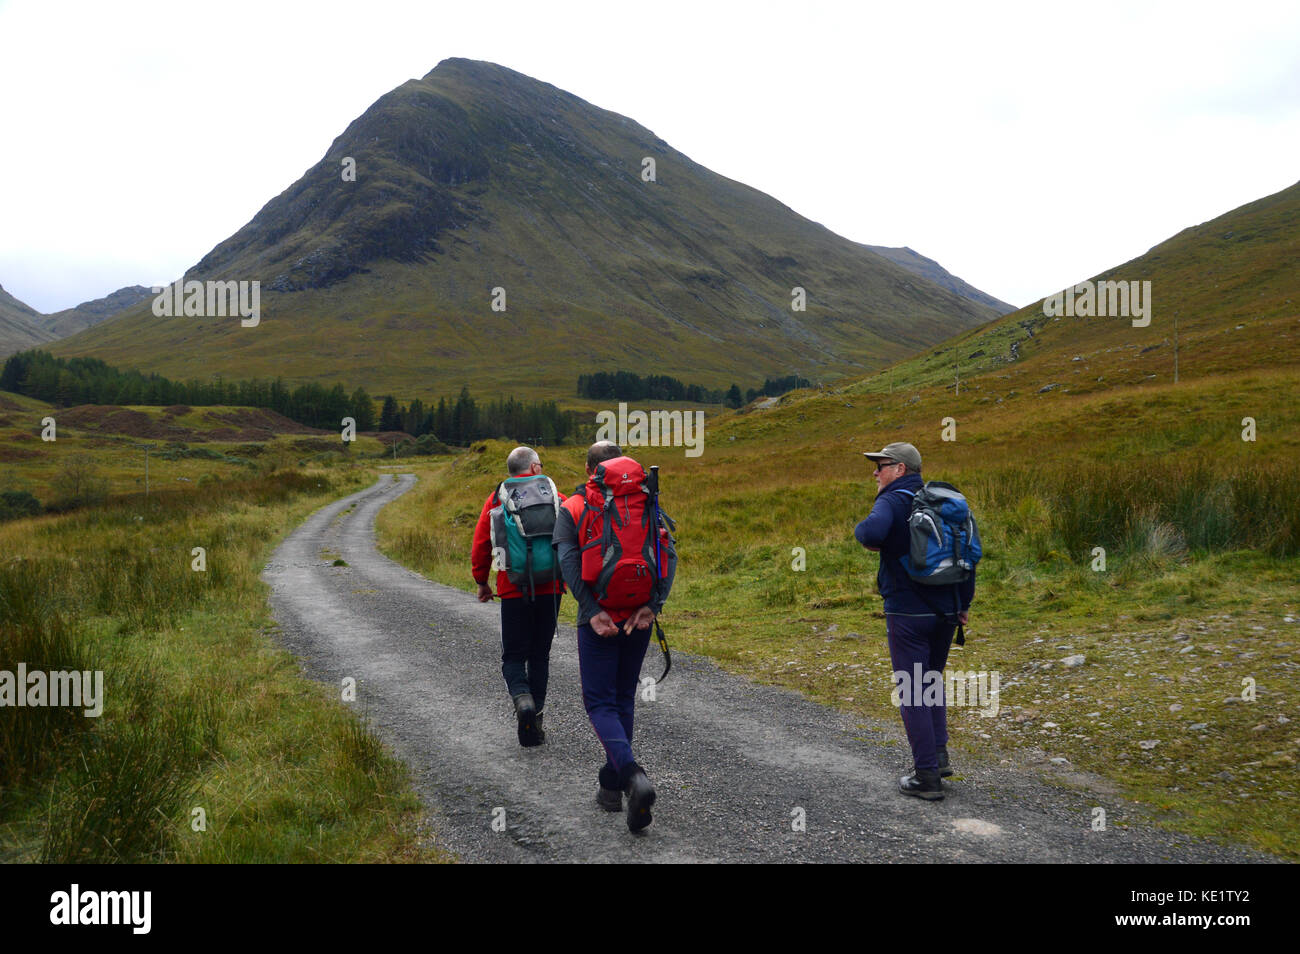 Three Hill Walkers in Gleann-leac-na-muidhe and Aonach Dudh a' Ghlinne the Northern Ridge of the Munro Sgor - Stock Image